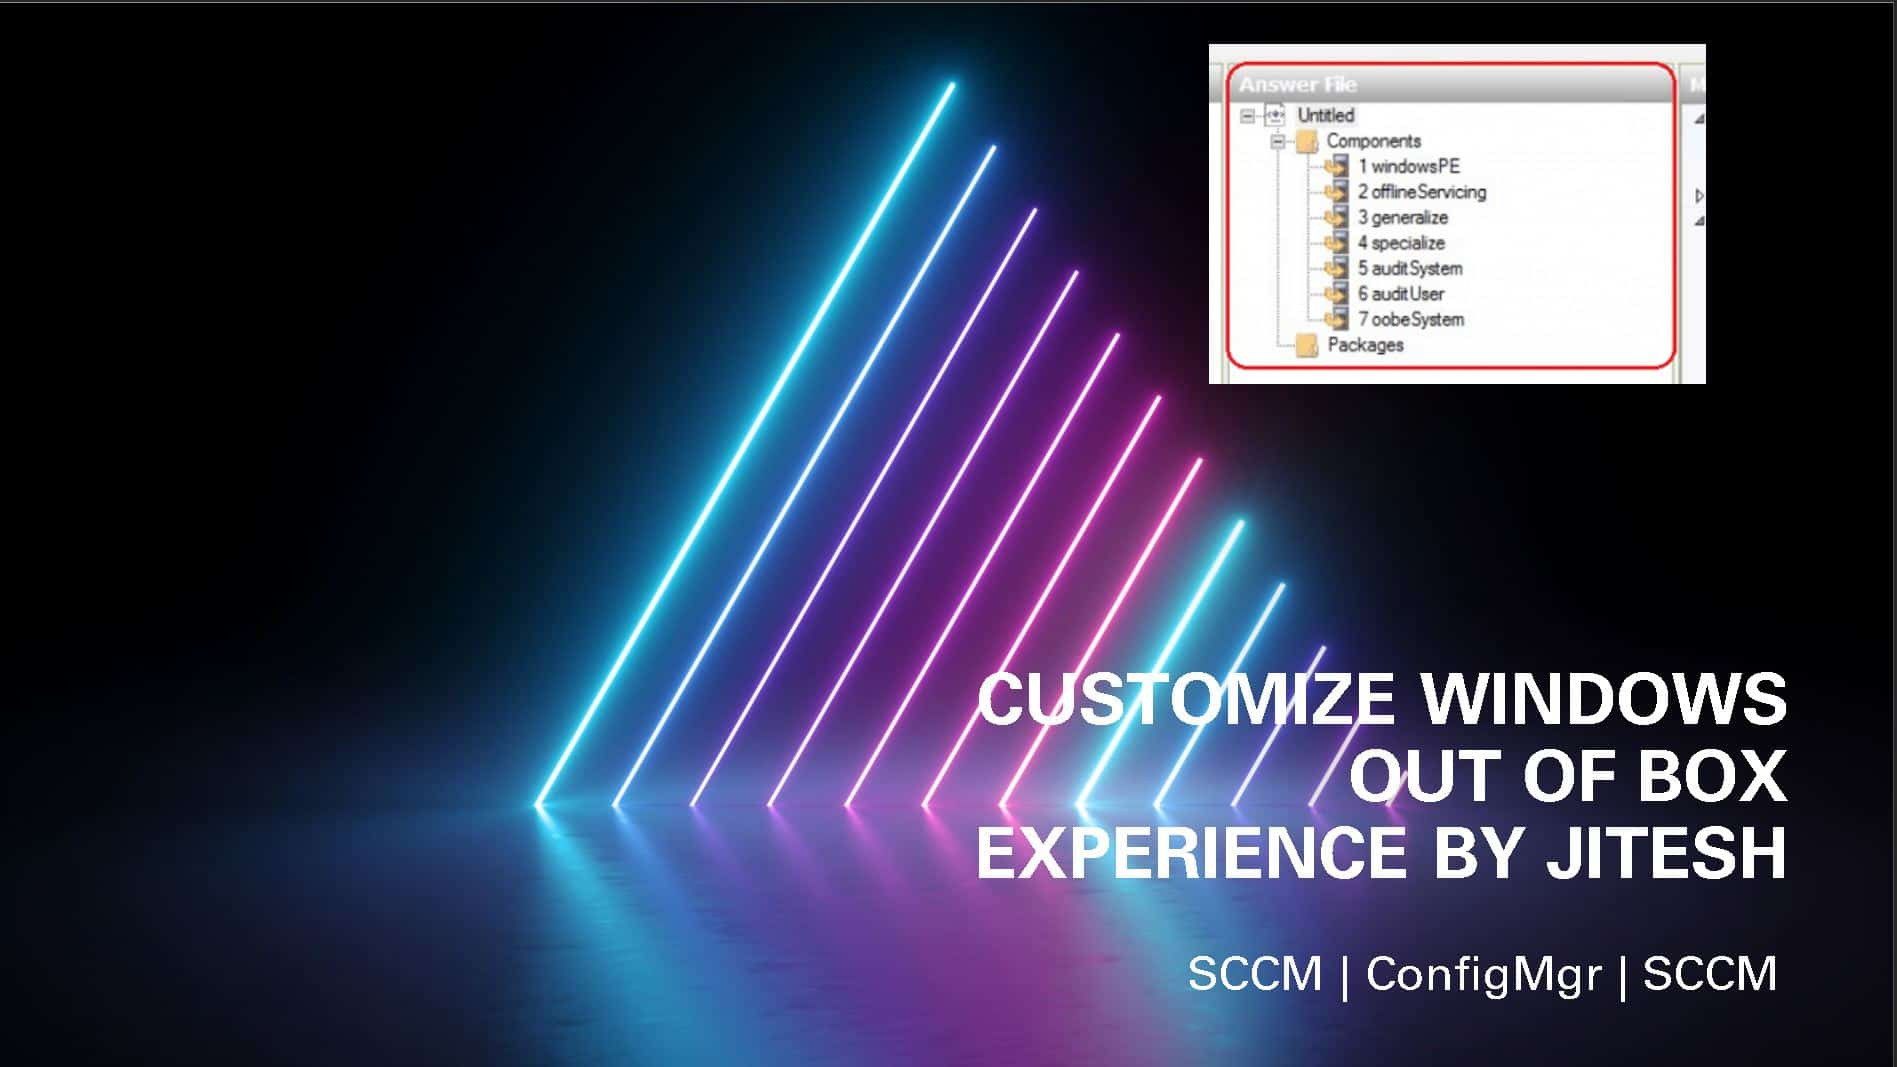 SCCM Customize Windows Out of Box Experience OOBE Using ConfigMgr